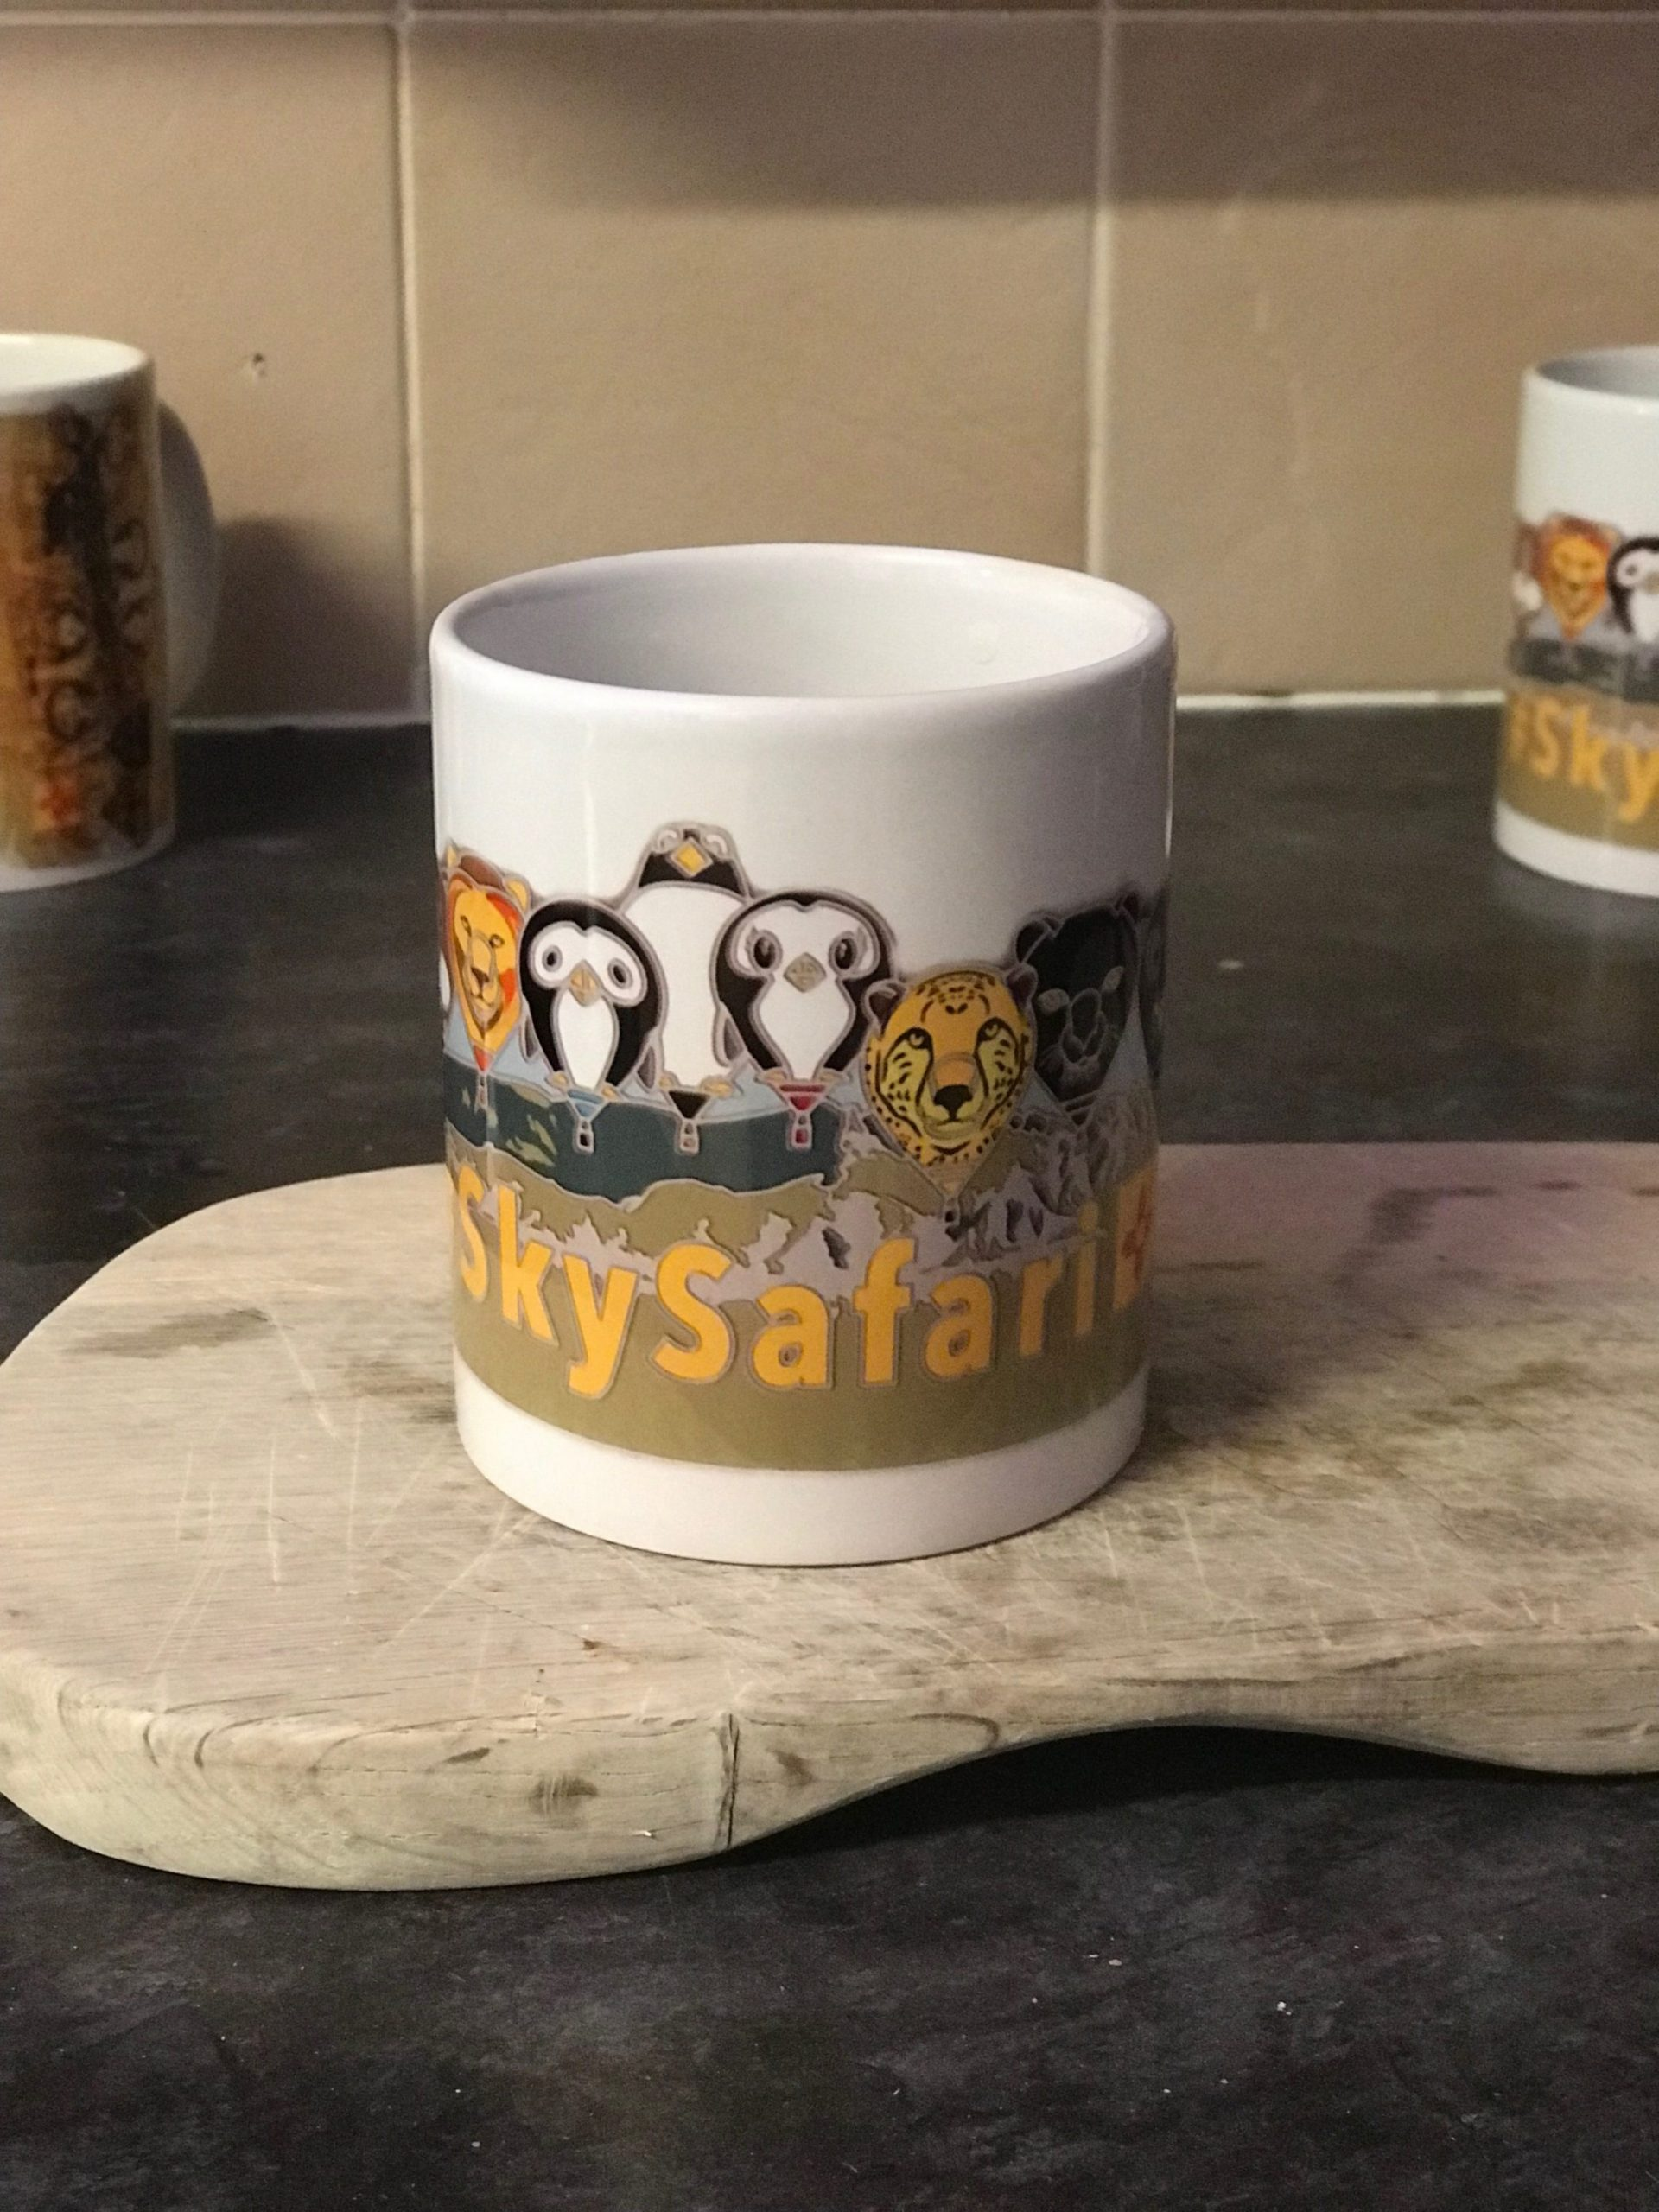 Albuquerque 2019 SkySafari® Official Mug